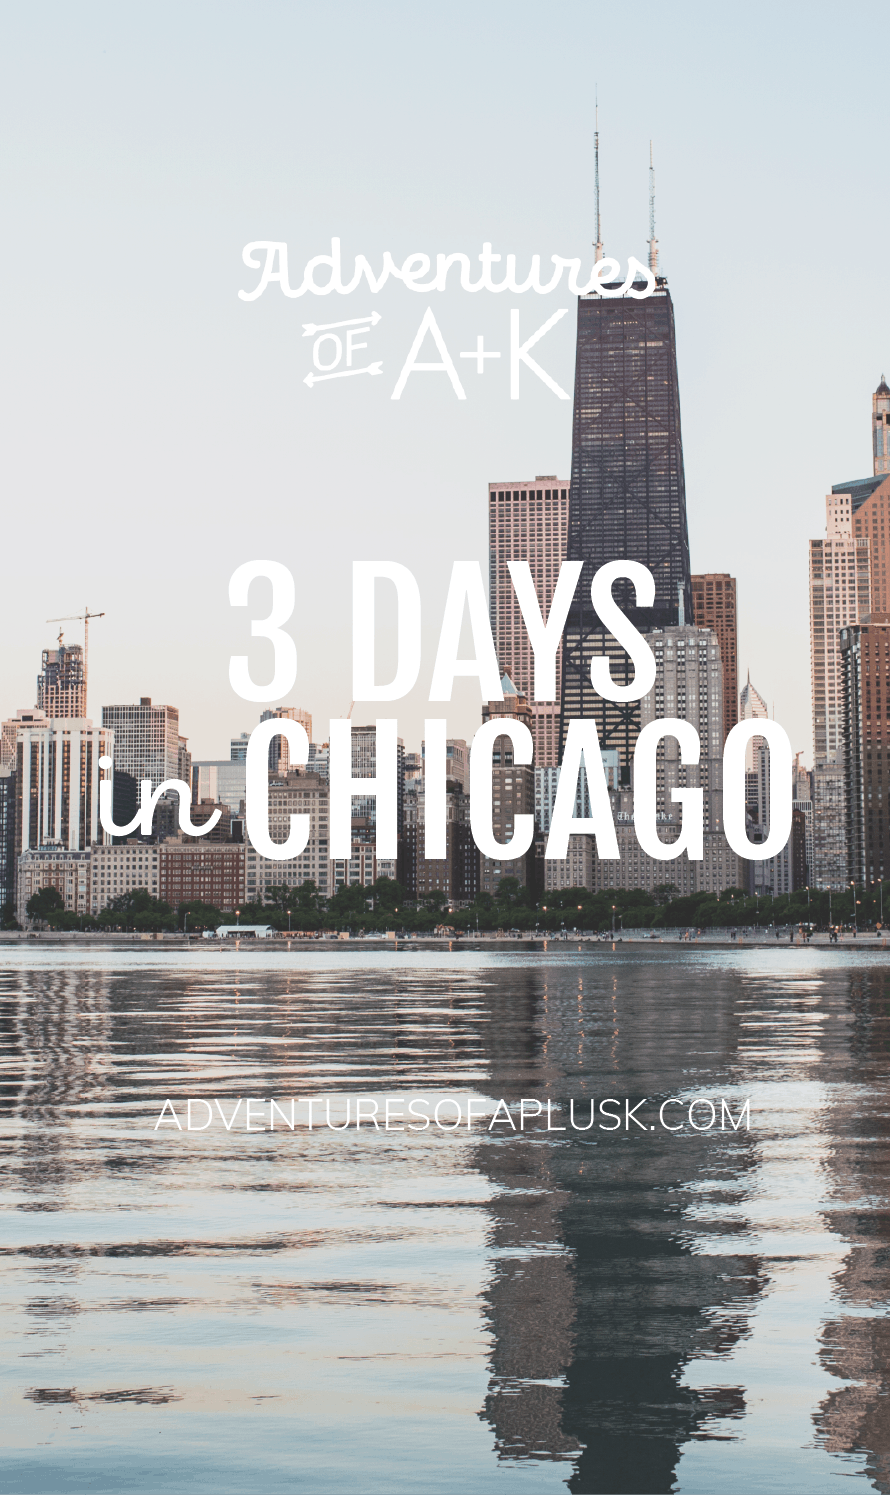 Chicago Itinerary and guide | Things to do in Chicago | Where to eat Chicago | Chicago things to do in Chicago #Chicago